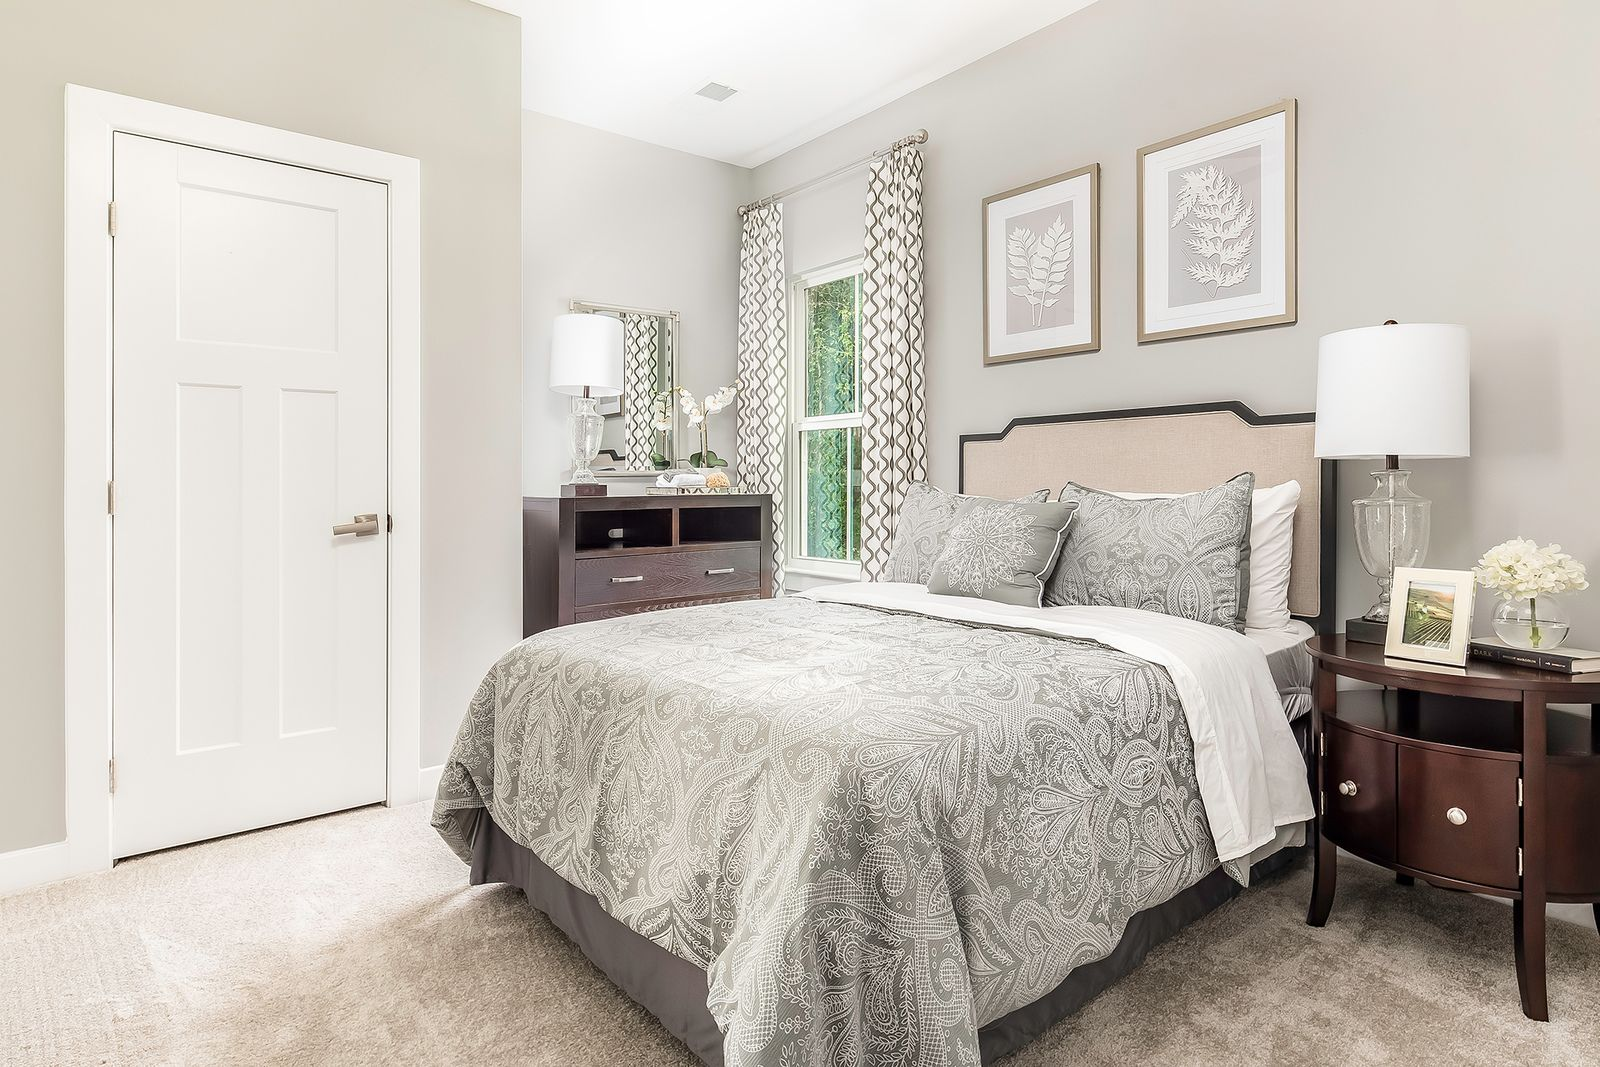 Bedroom featured in the Hudson By Ryan Homes in Philadelphia, NJ